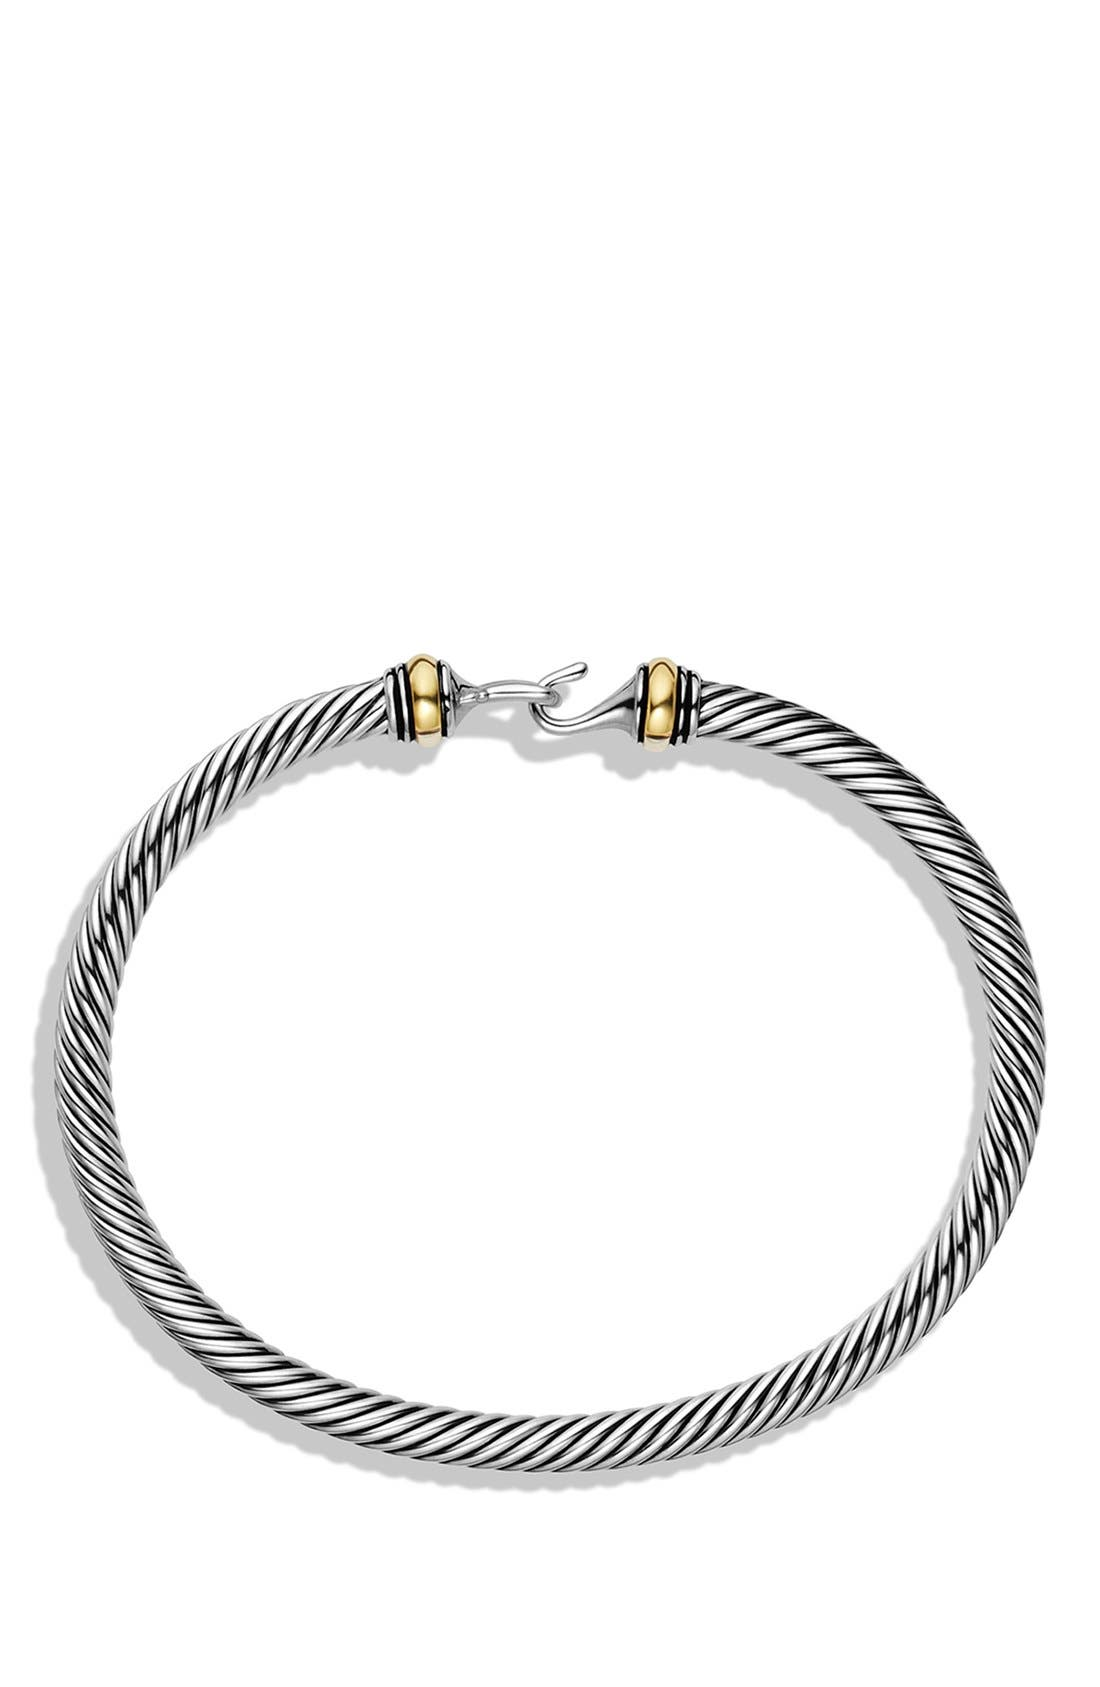 Cable Buckle Bracelet with Gold, 4mm,                             Alternate thumbnail 2, color,                             Two Tone